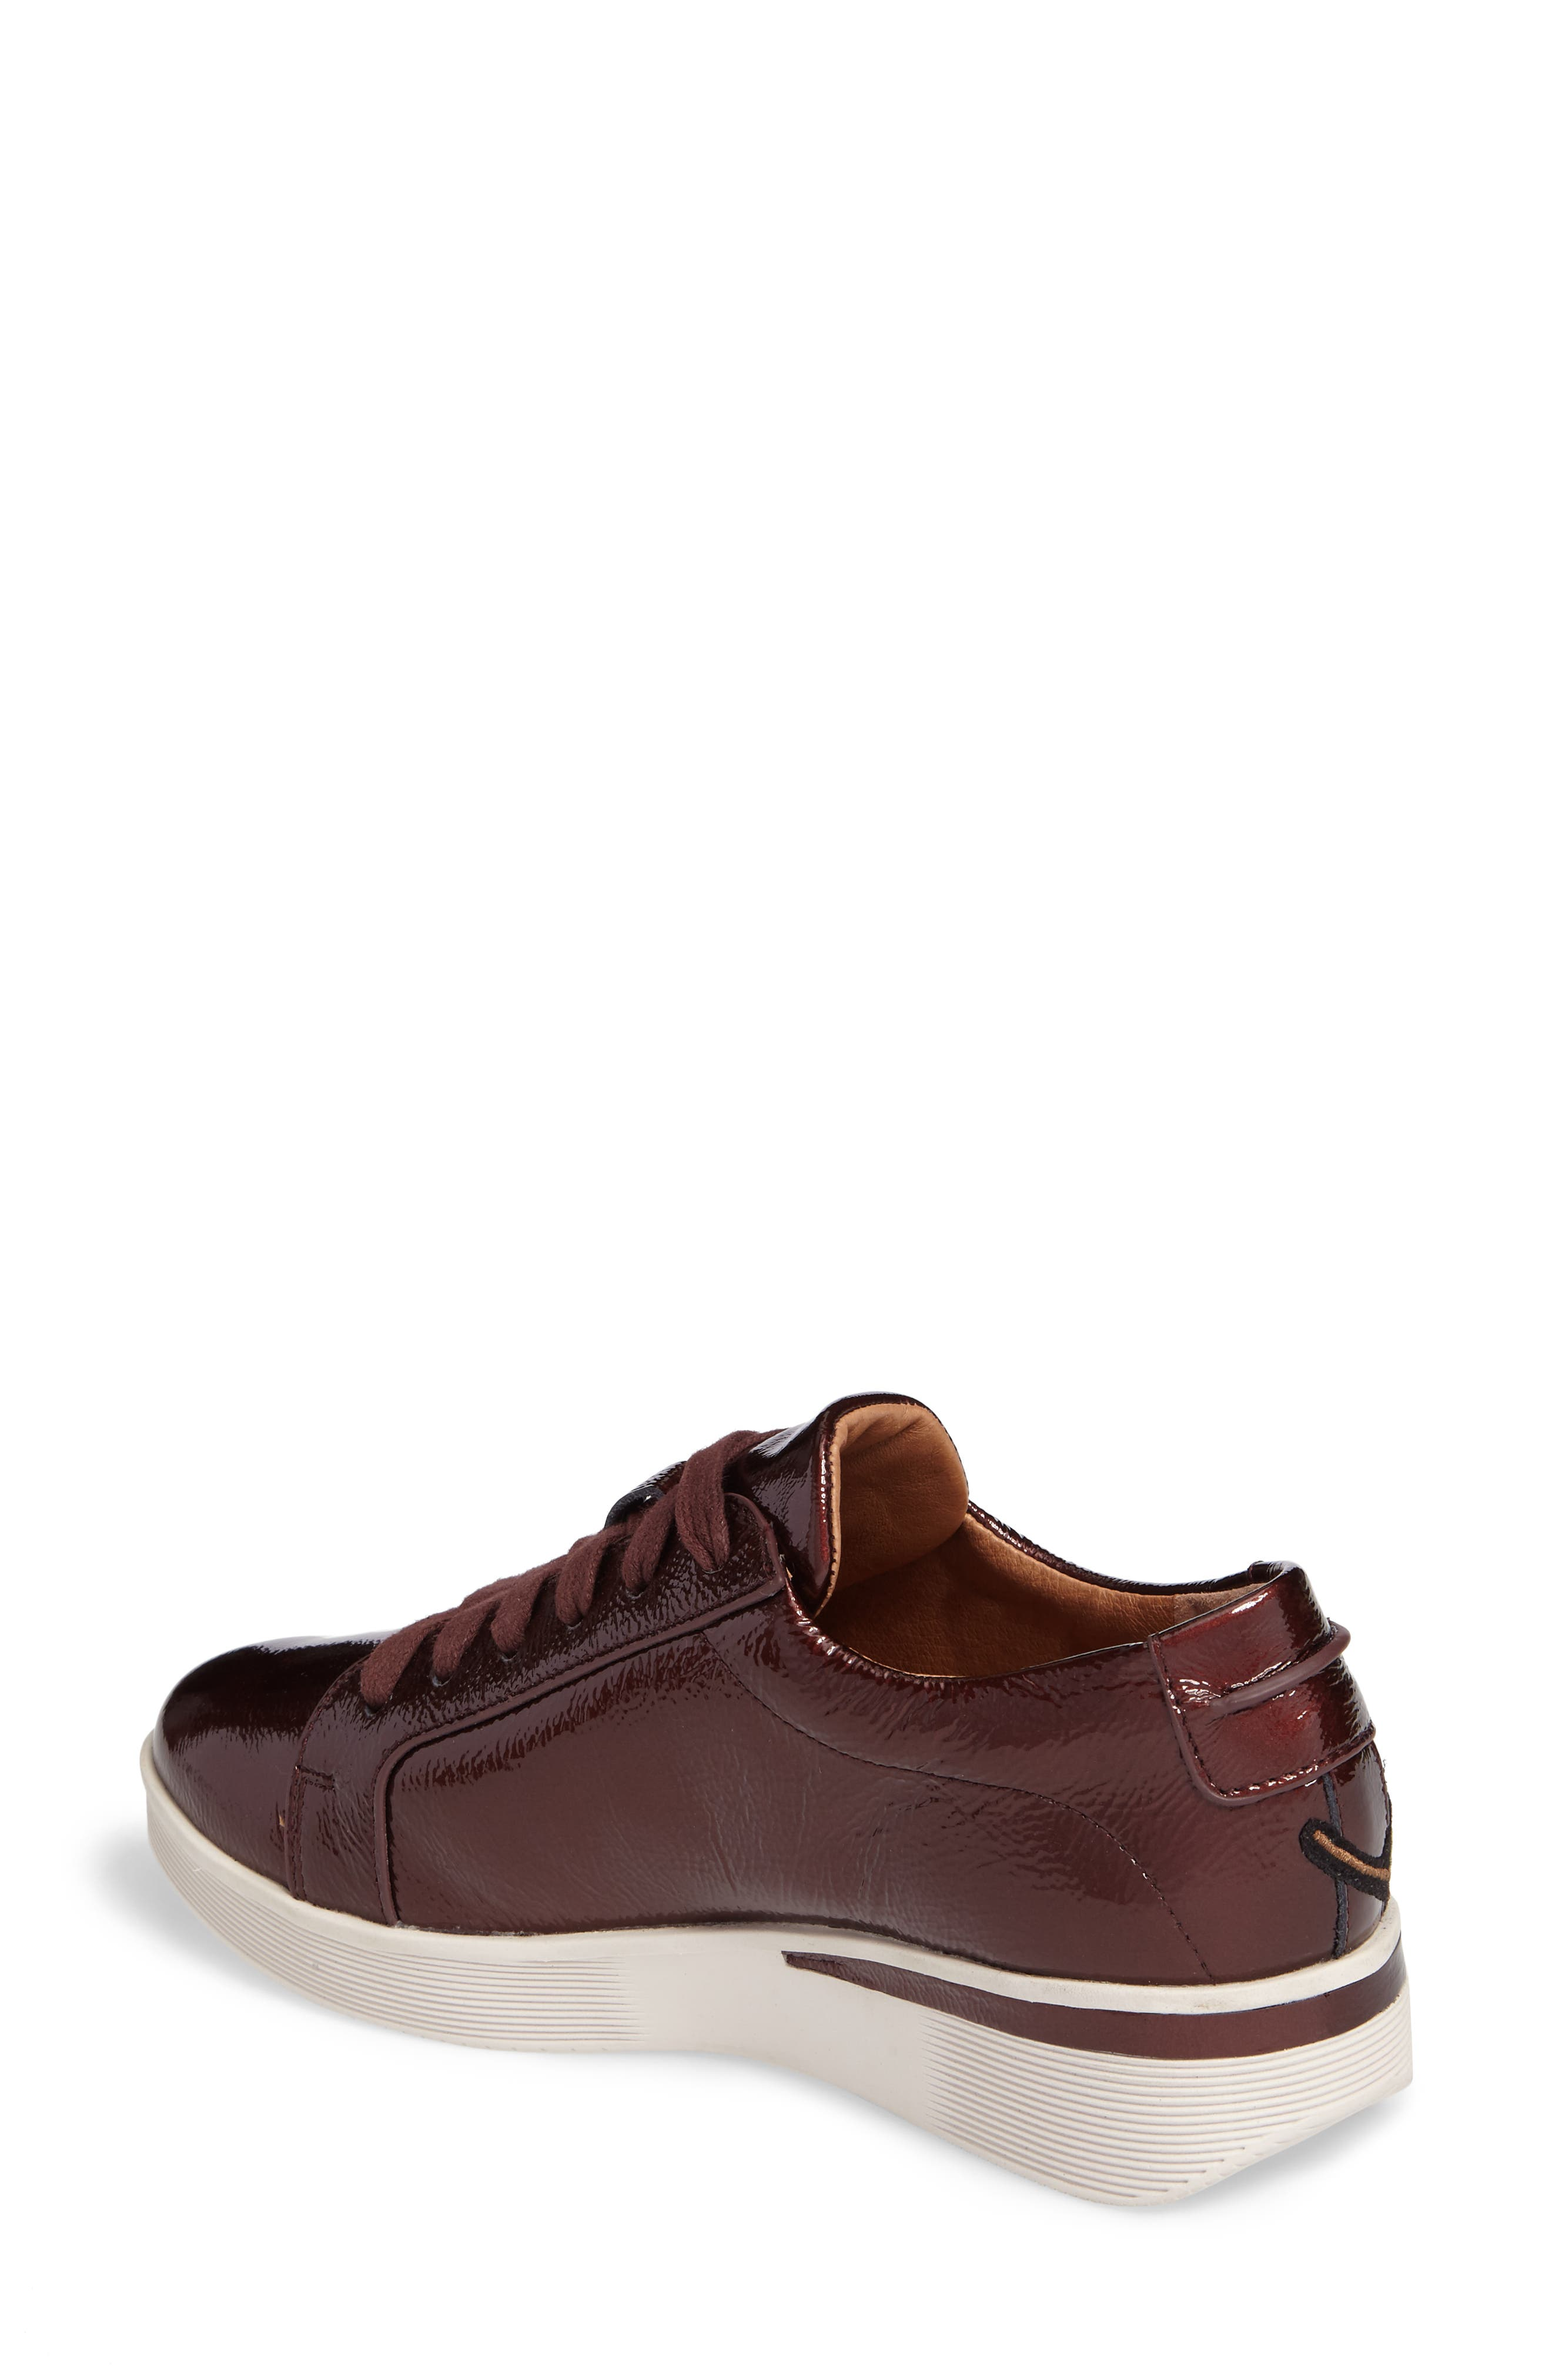 Gentle Soles Haddie Rose Sneaker,                             Alternate thumbnail 2, color,                             Wine Patent Leather